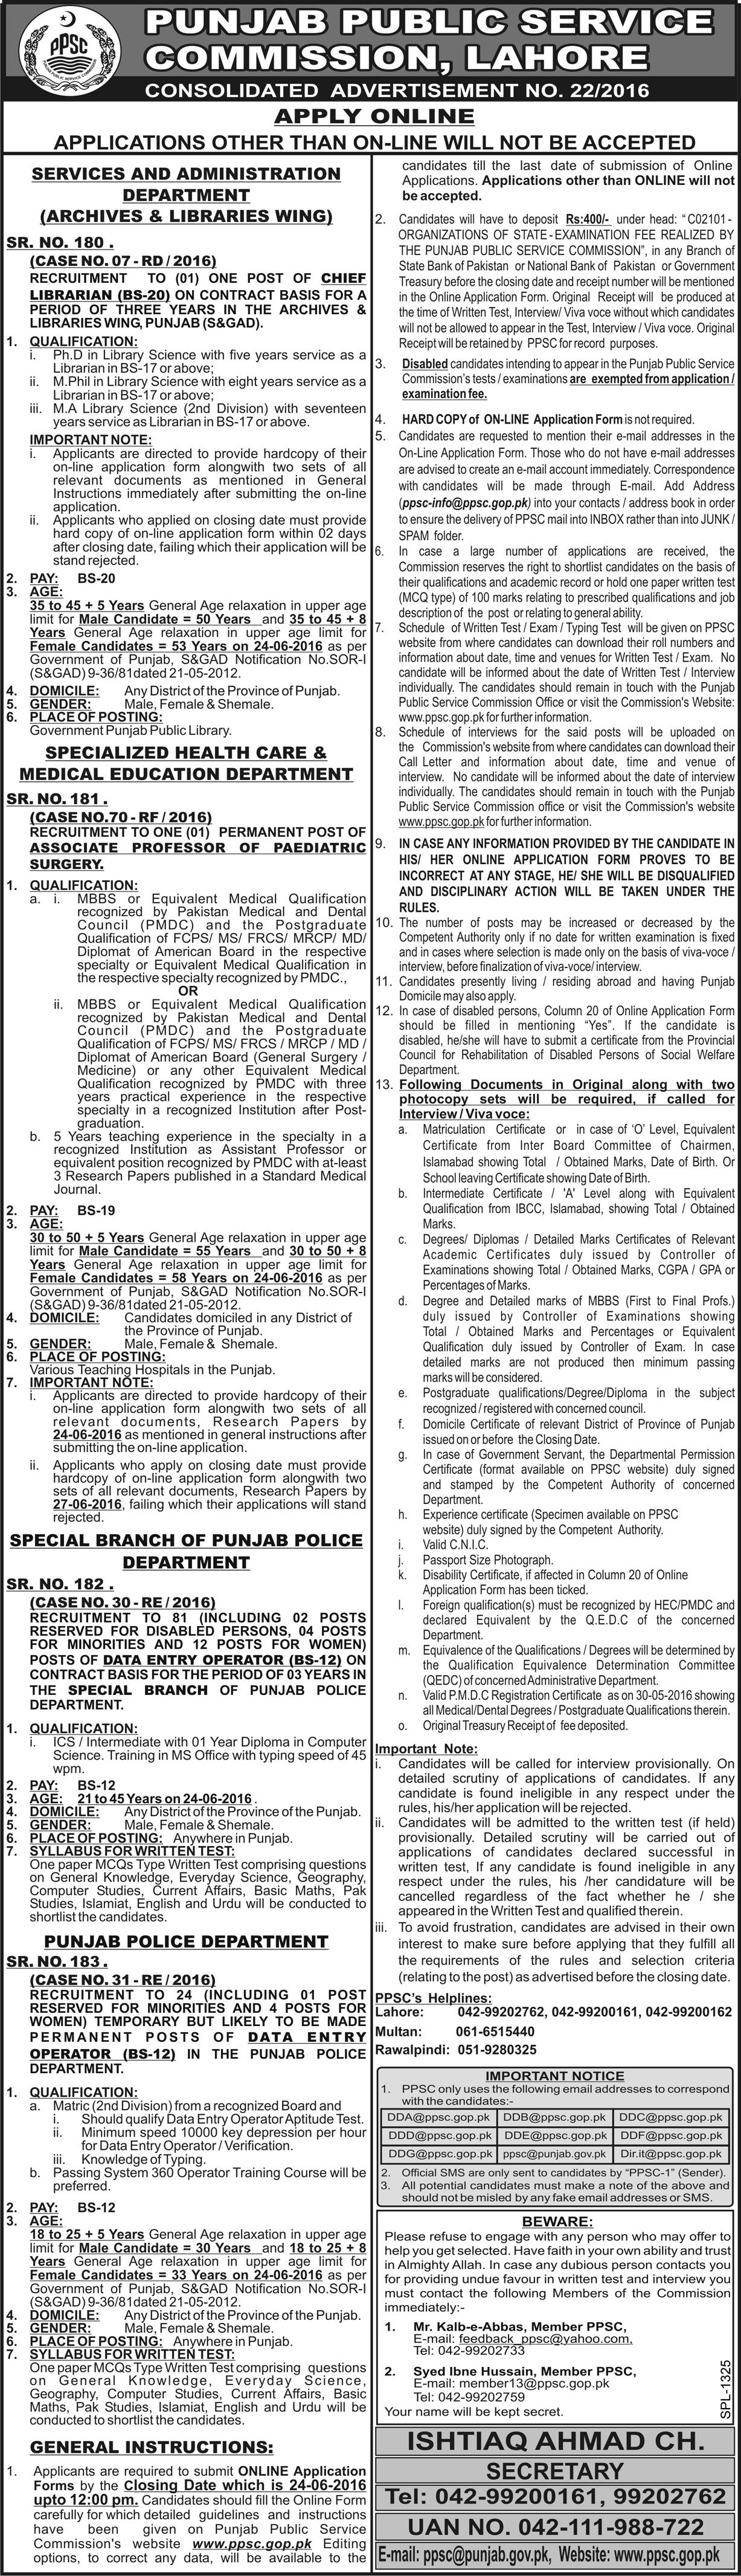 Punjab Public Service Commission Advertisement Number 22-2016